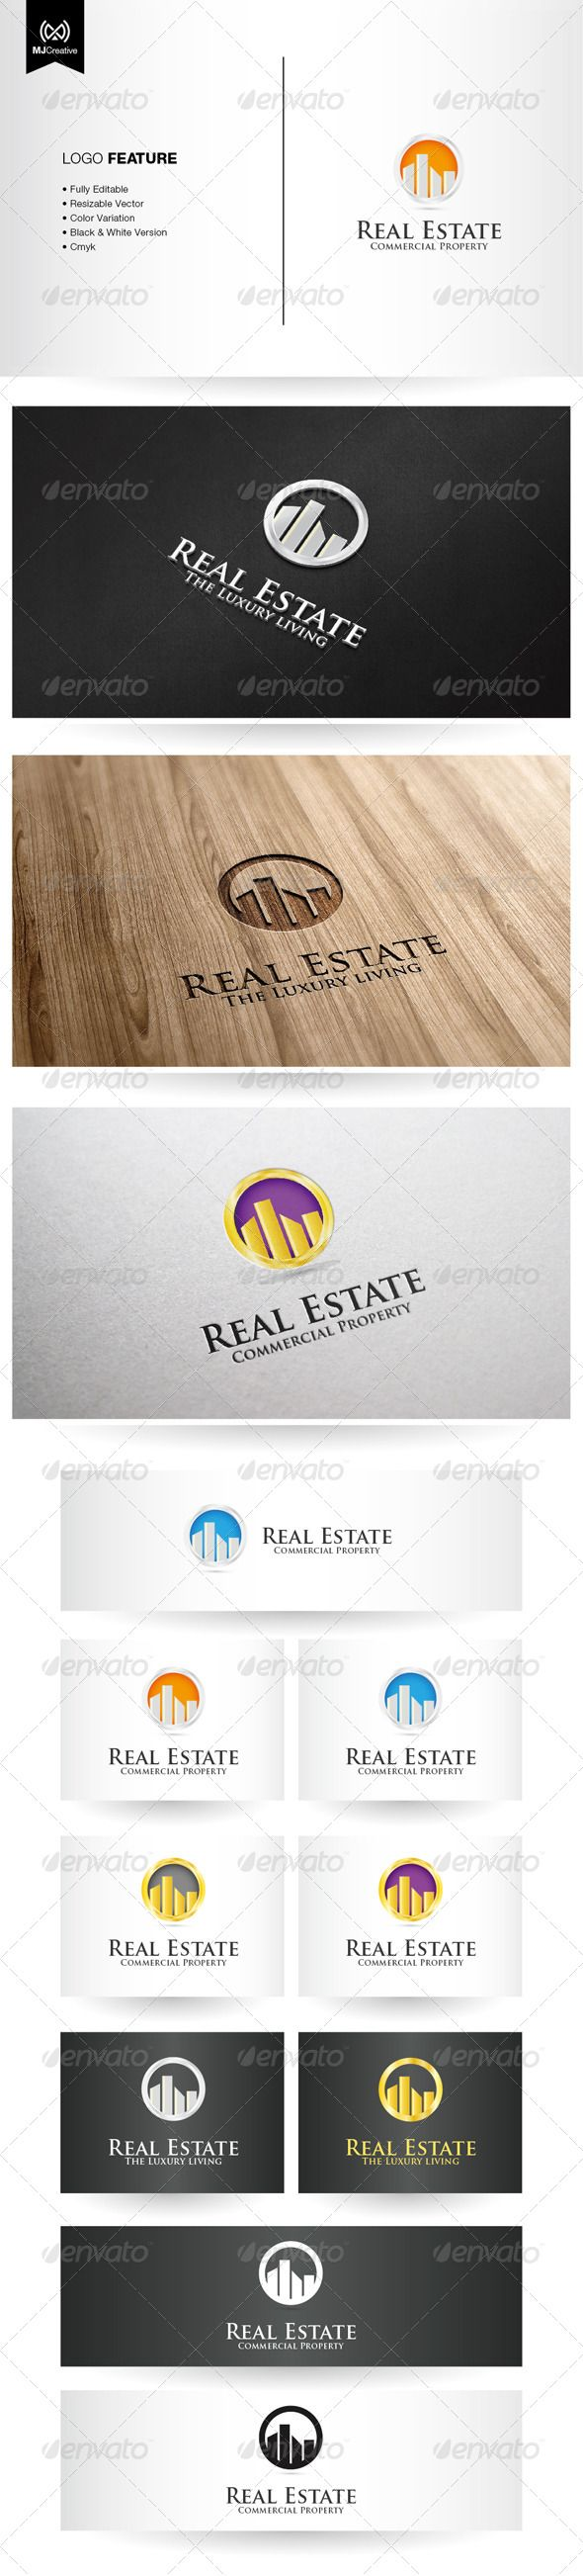 Commercial Property Branding : Best ideas about real estate logo on pinterest